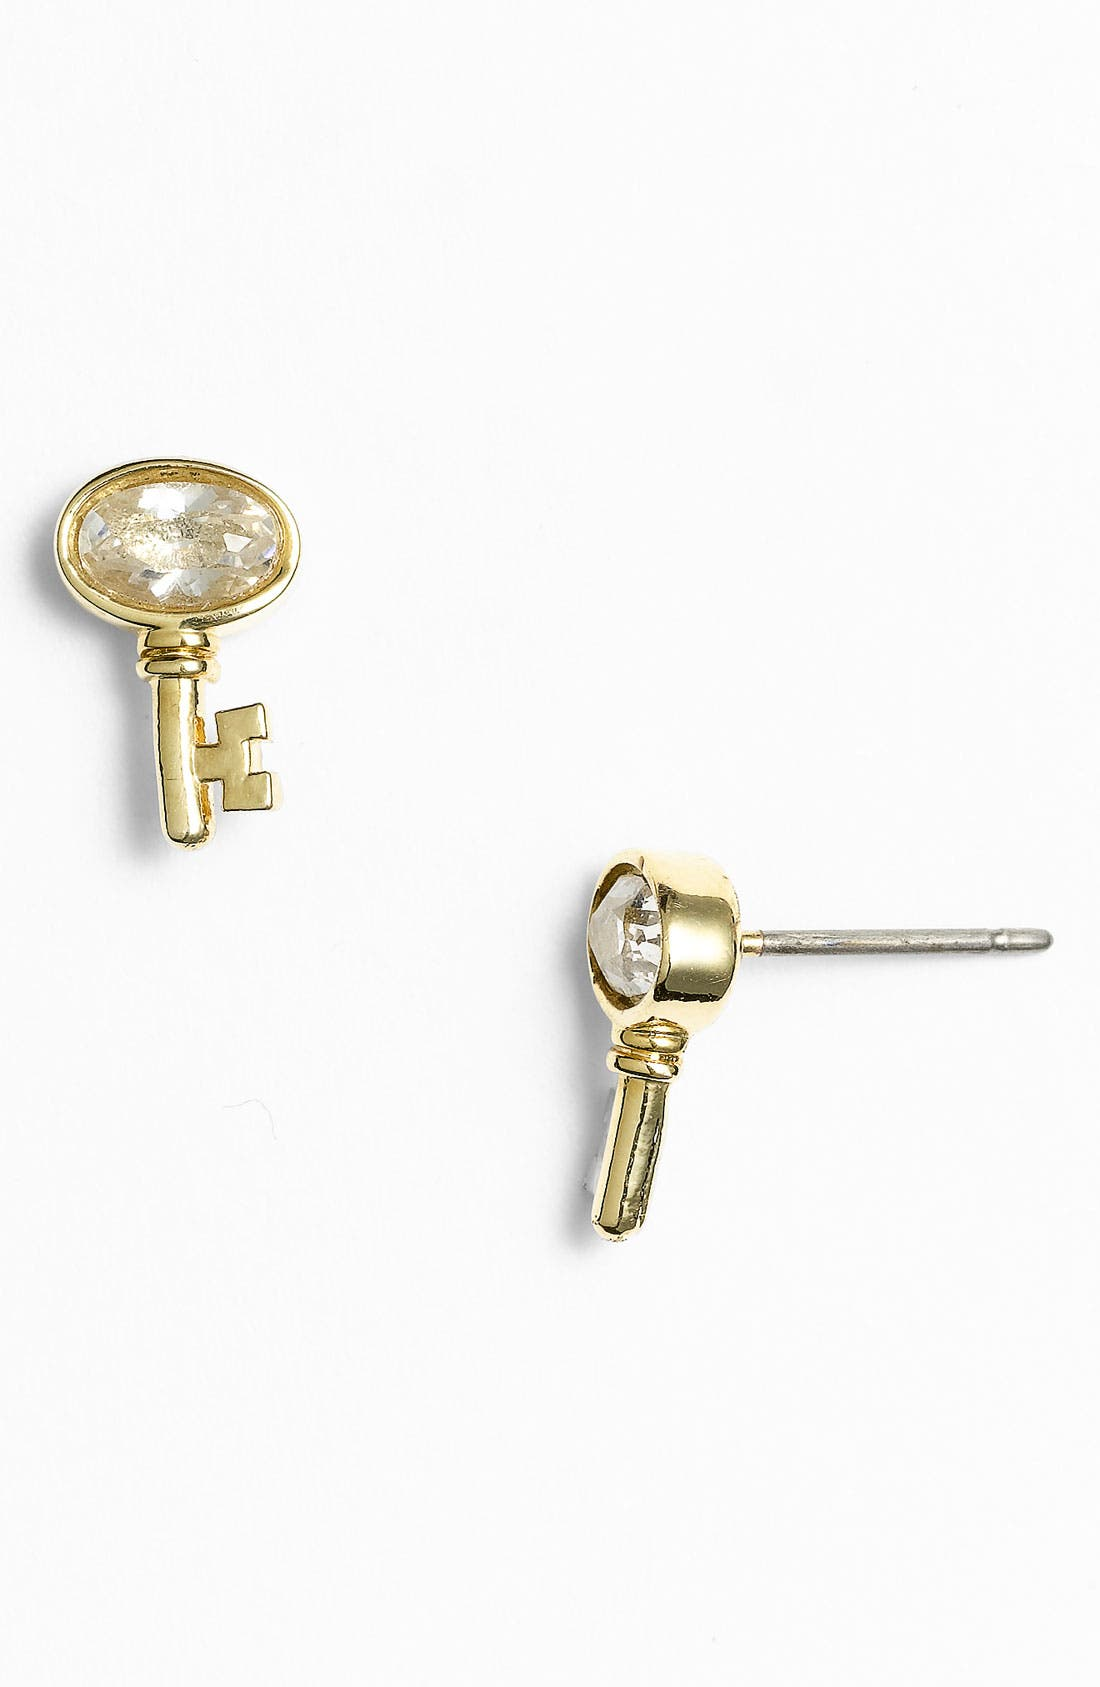 Main Image - Juicy Couture 'Key to the Castle' Stud Earrings